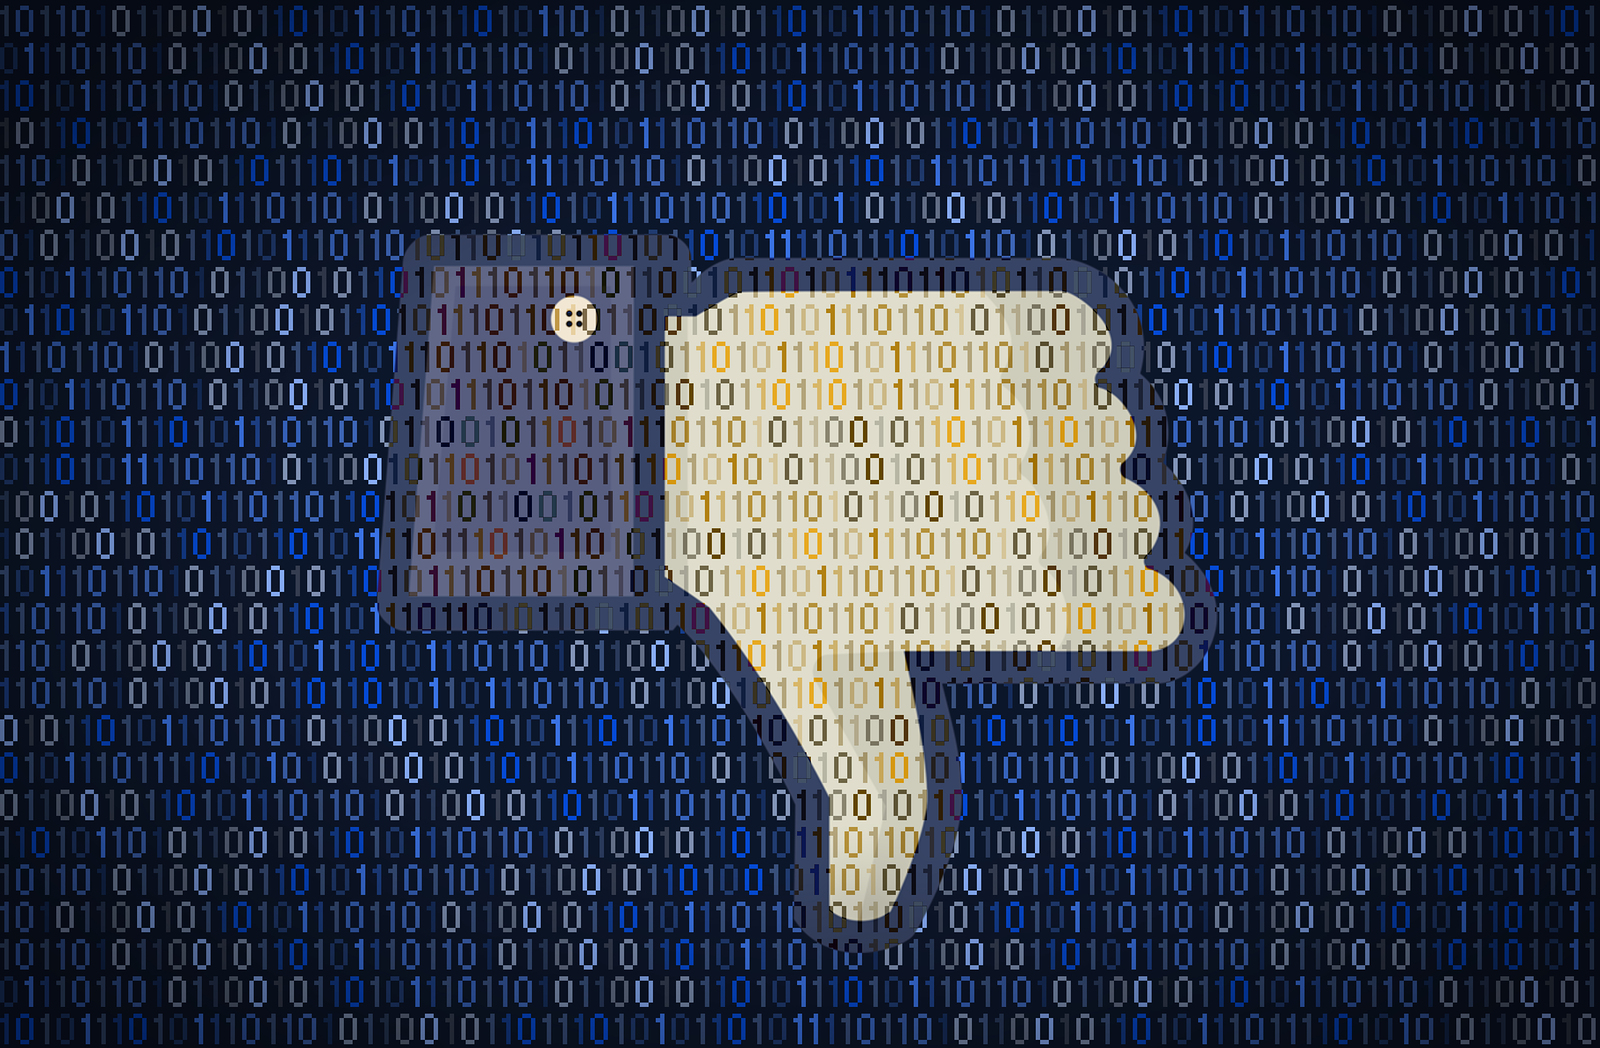 Dopo due anni di scandalo, Facebook è ancora importante per il social media marketing?